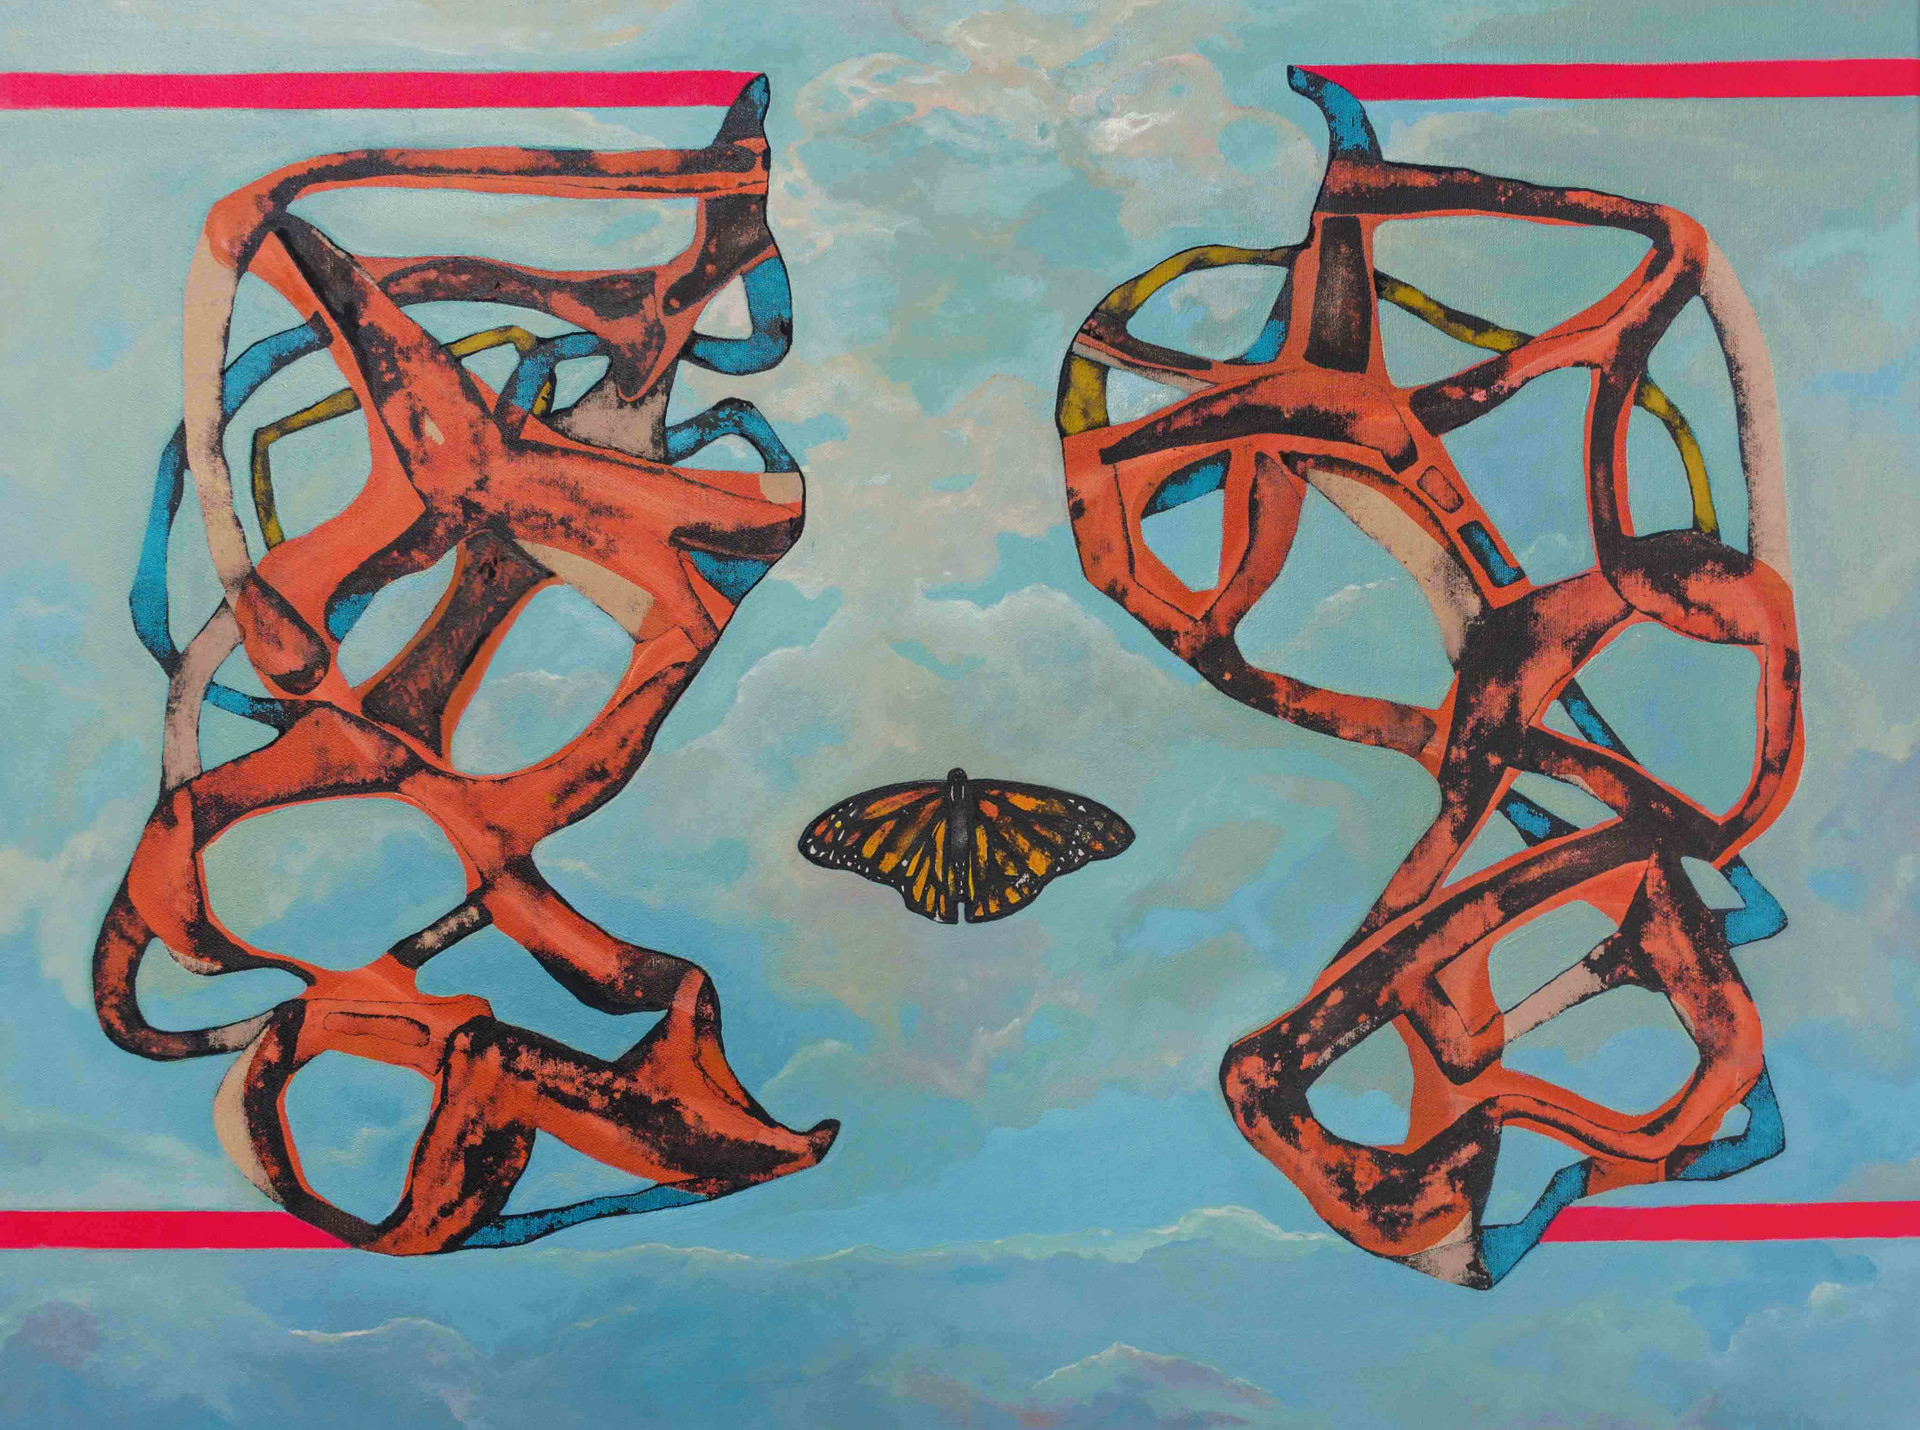 Mimesis 2014 50x70cm. Oil acrylic and Ink on canvas